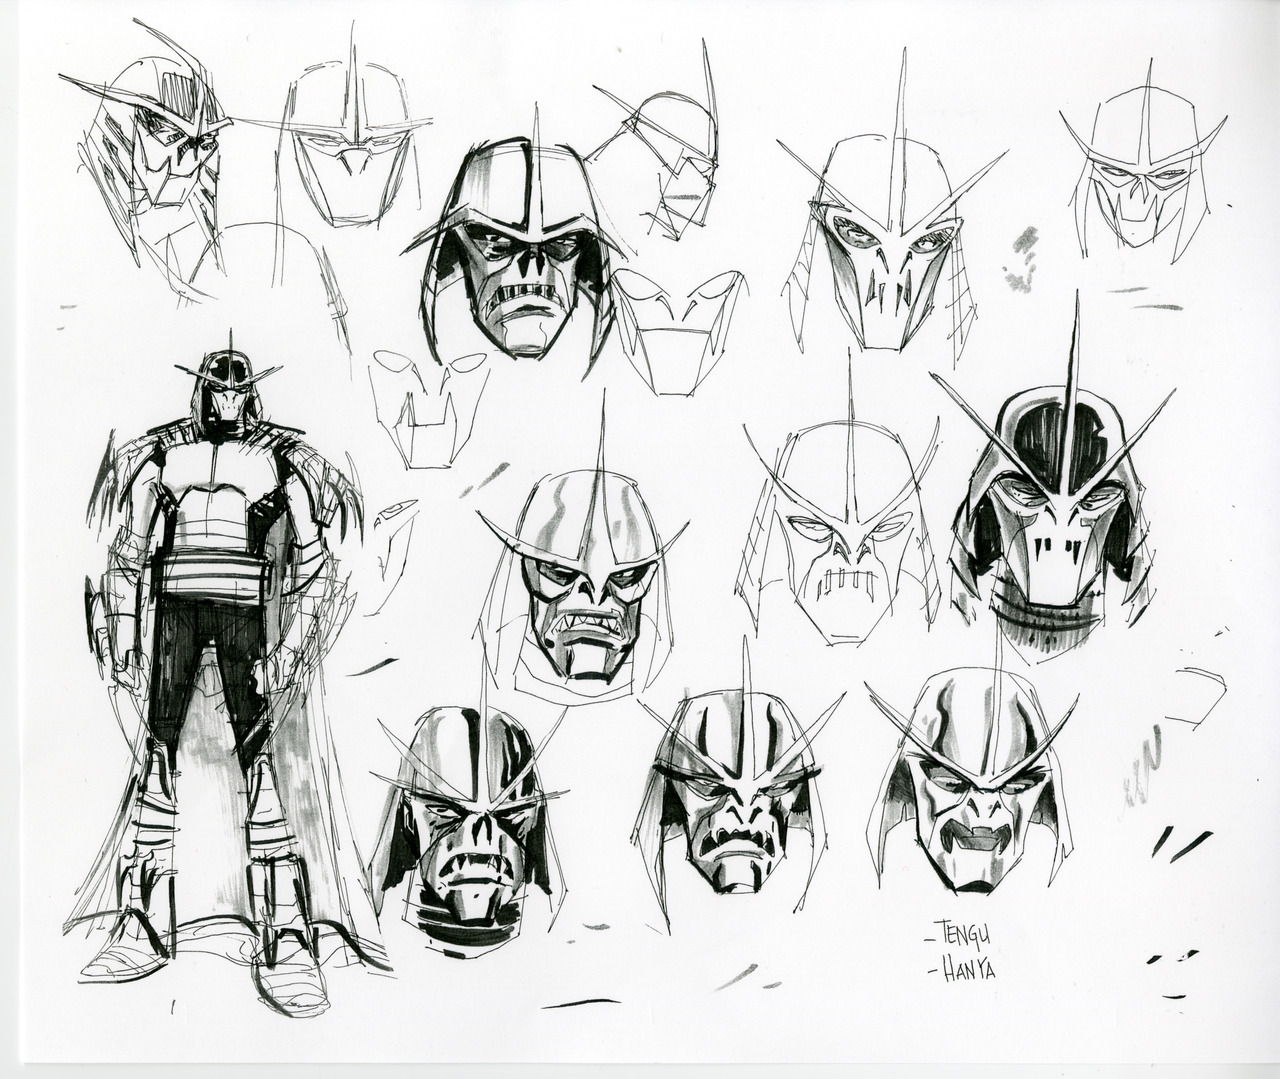 75 Pieces Of Concept Art From Tv Movies And Video Games